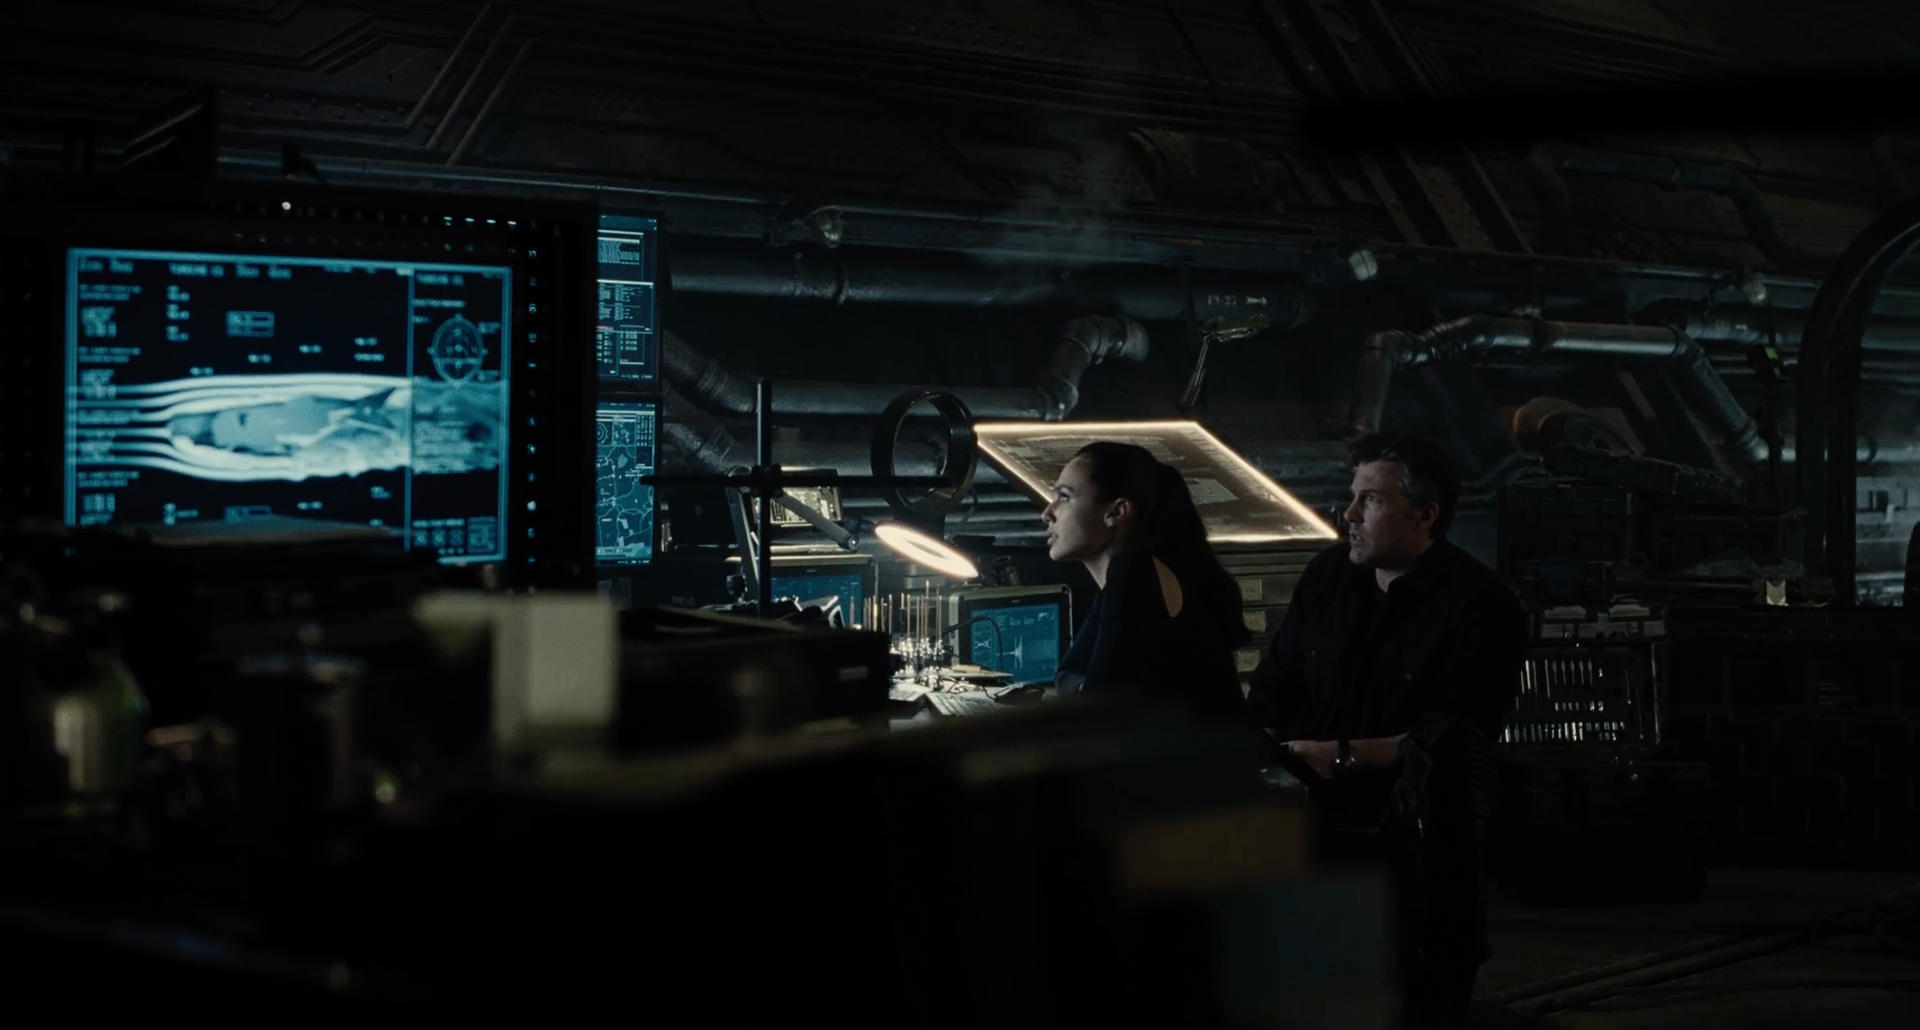 Finding a job can be harder than finding metahumans - Screenshot from Justice League (2017) trailer.